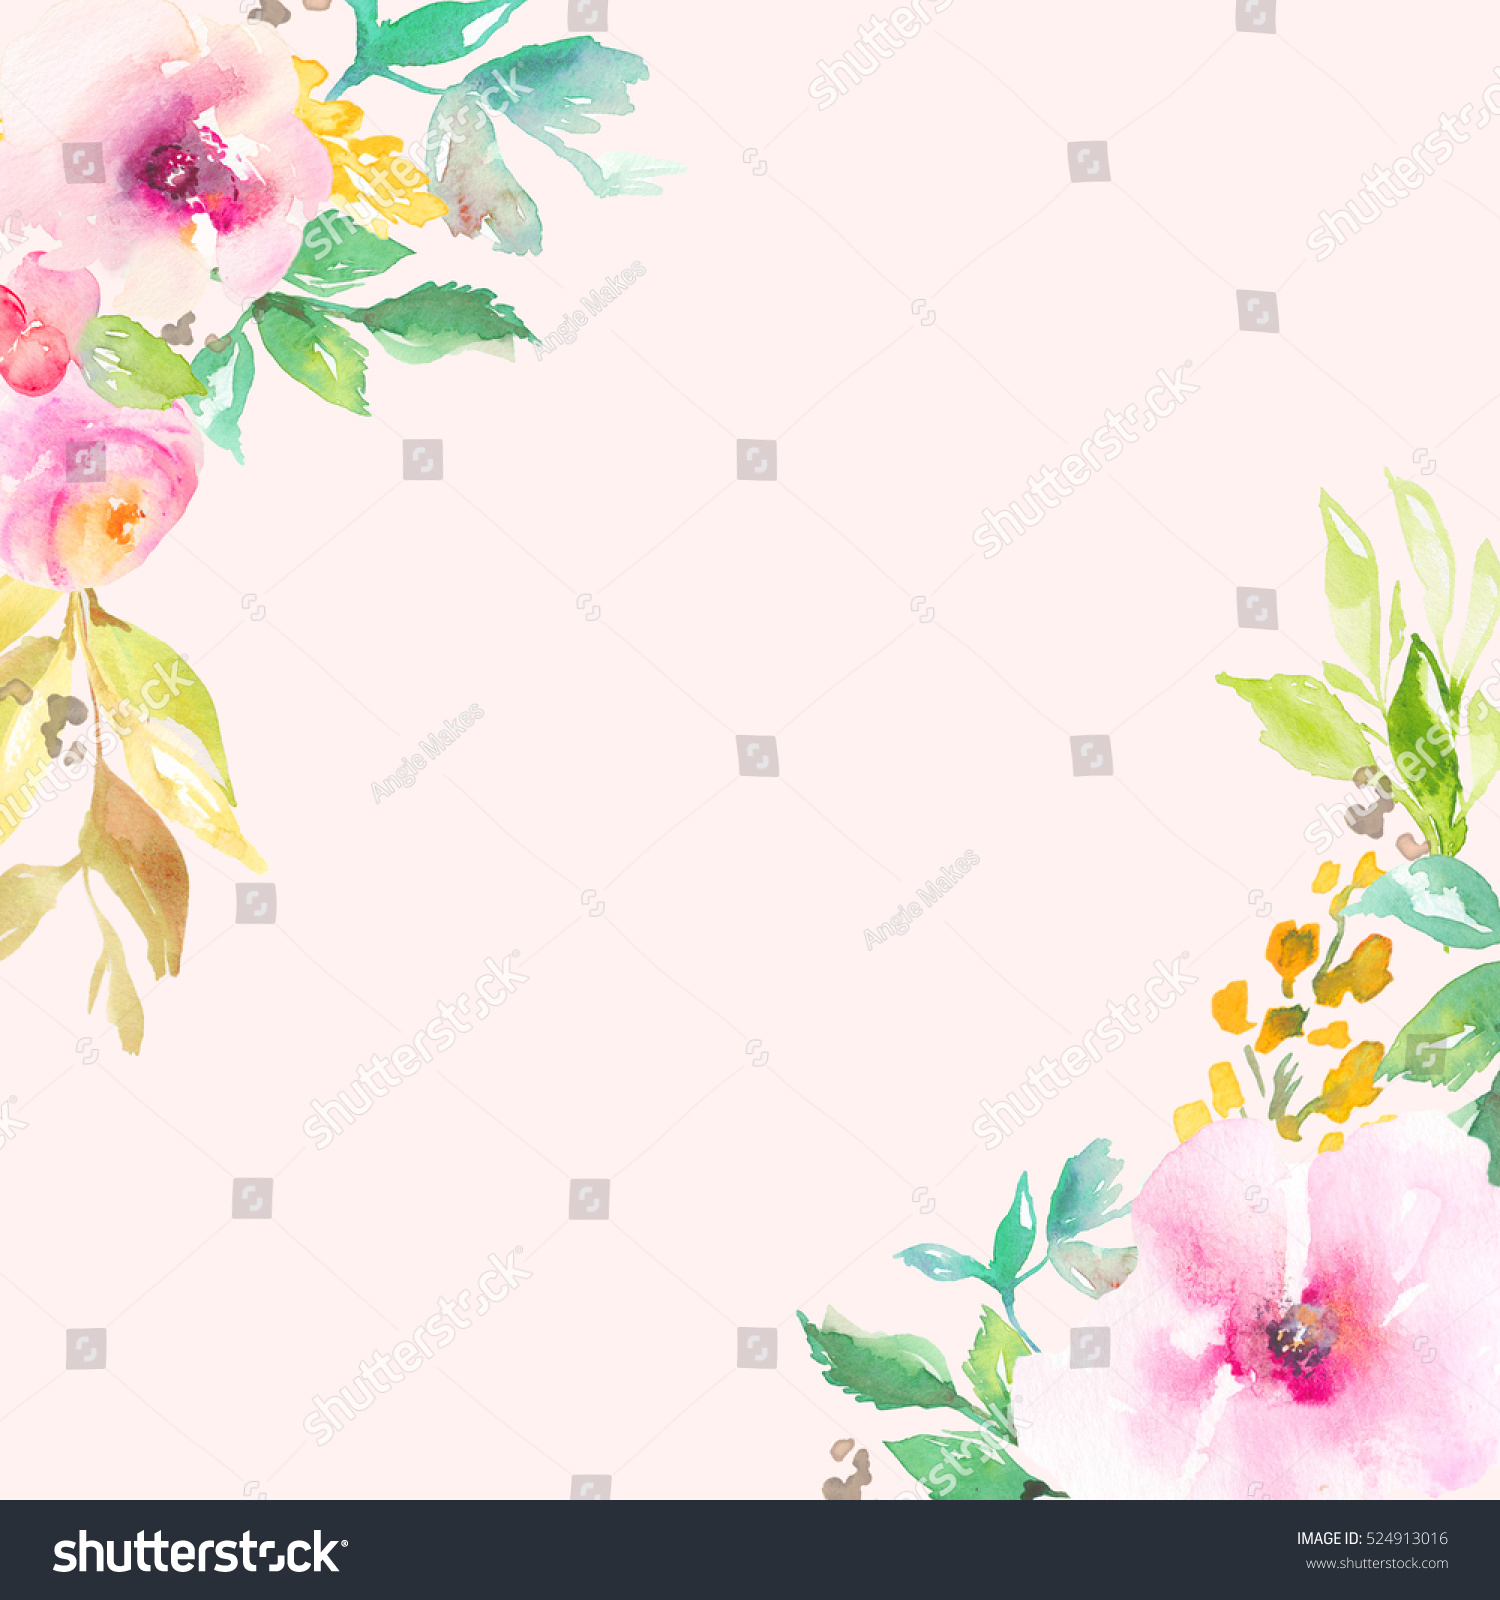 pink watercolor flower frame watercolor flowers stock illustration